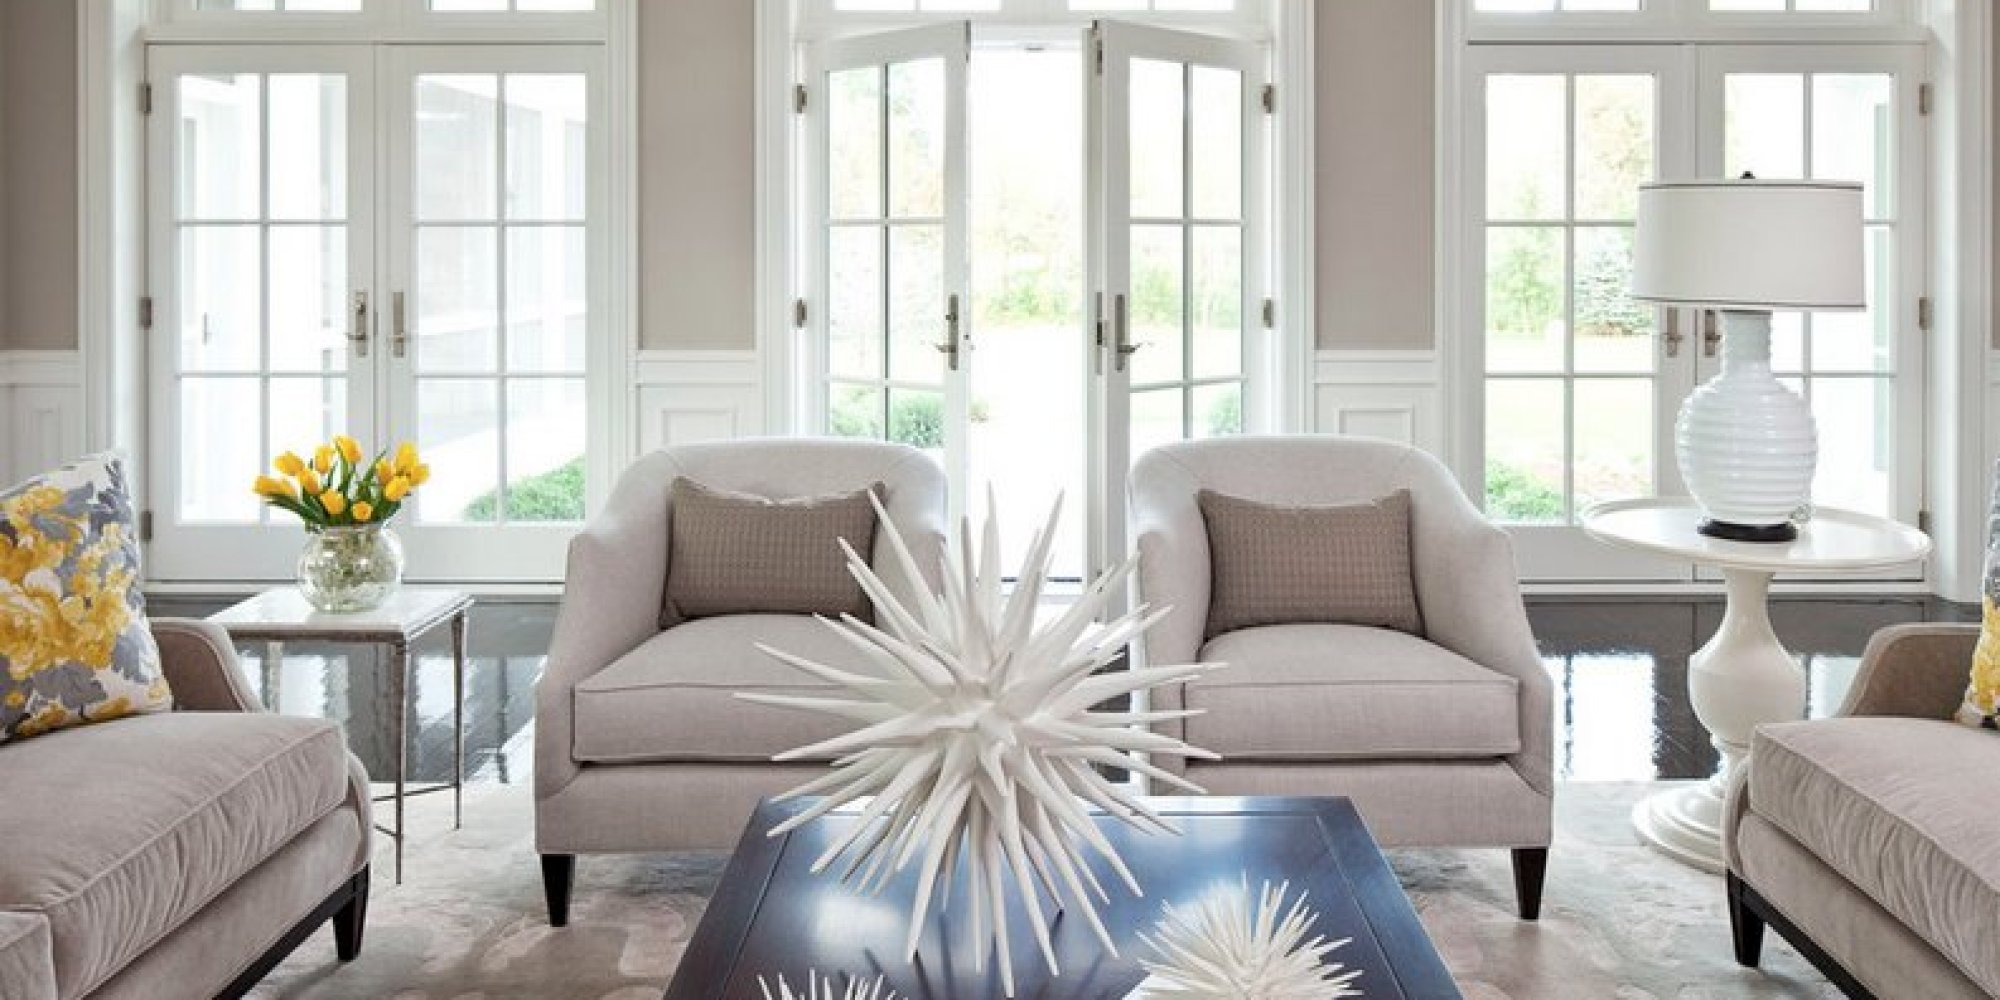 The 8 best neutral paint colors that 39 ll work in any home - Living room paint colors for 2014 ...